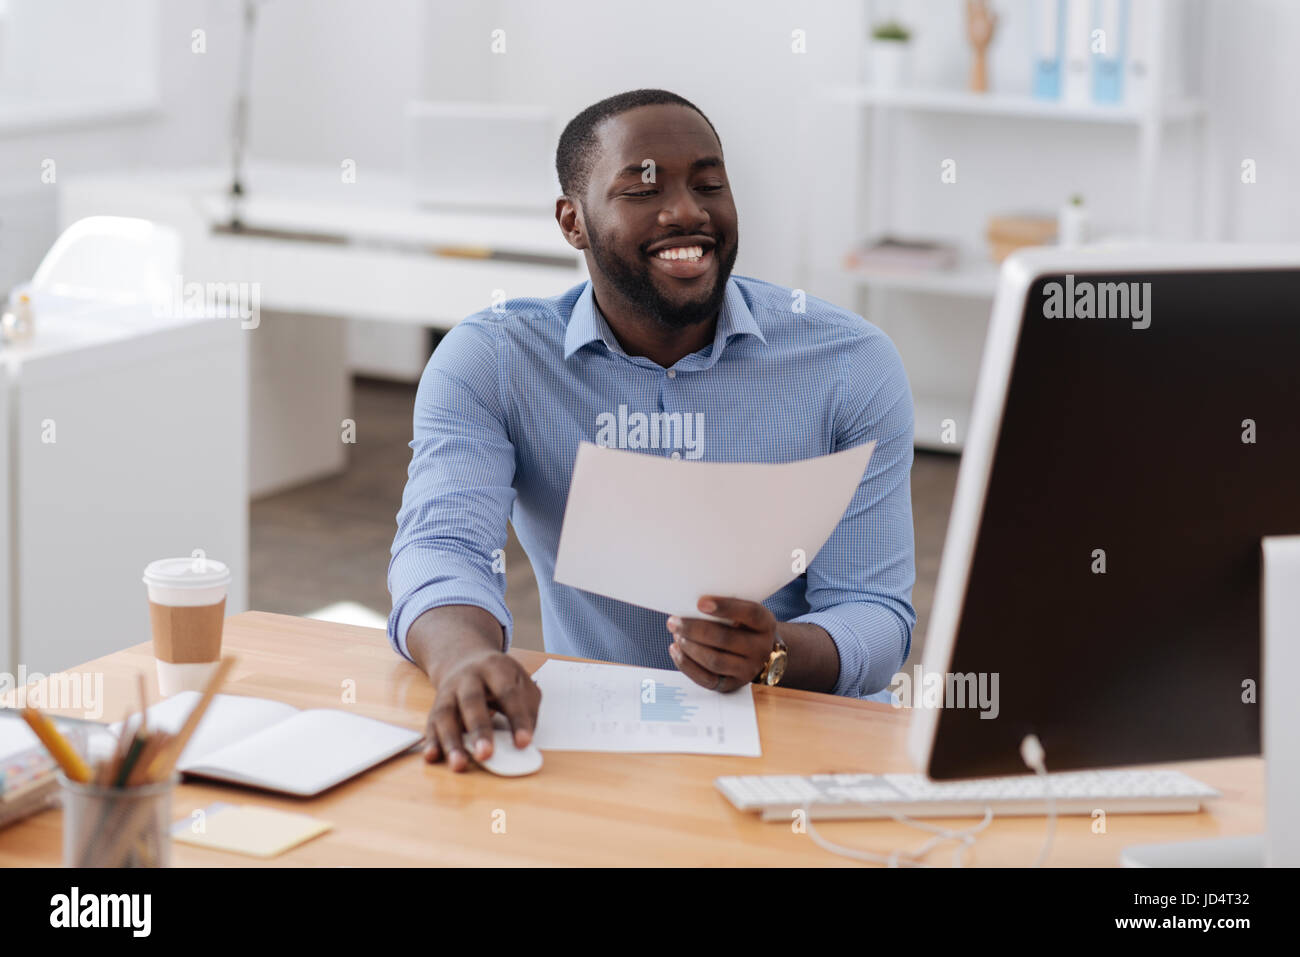 Positive happy man holding a computer mouse - Stock Image